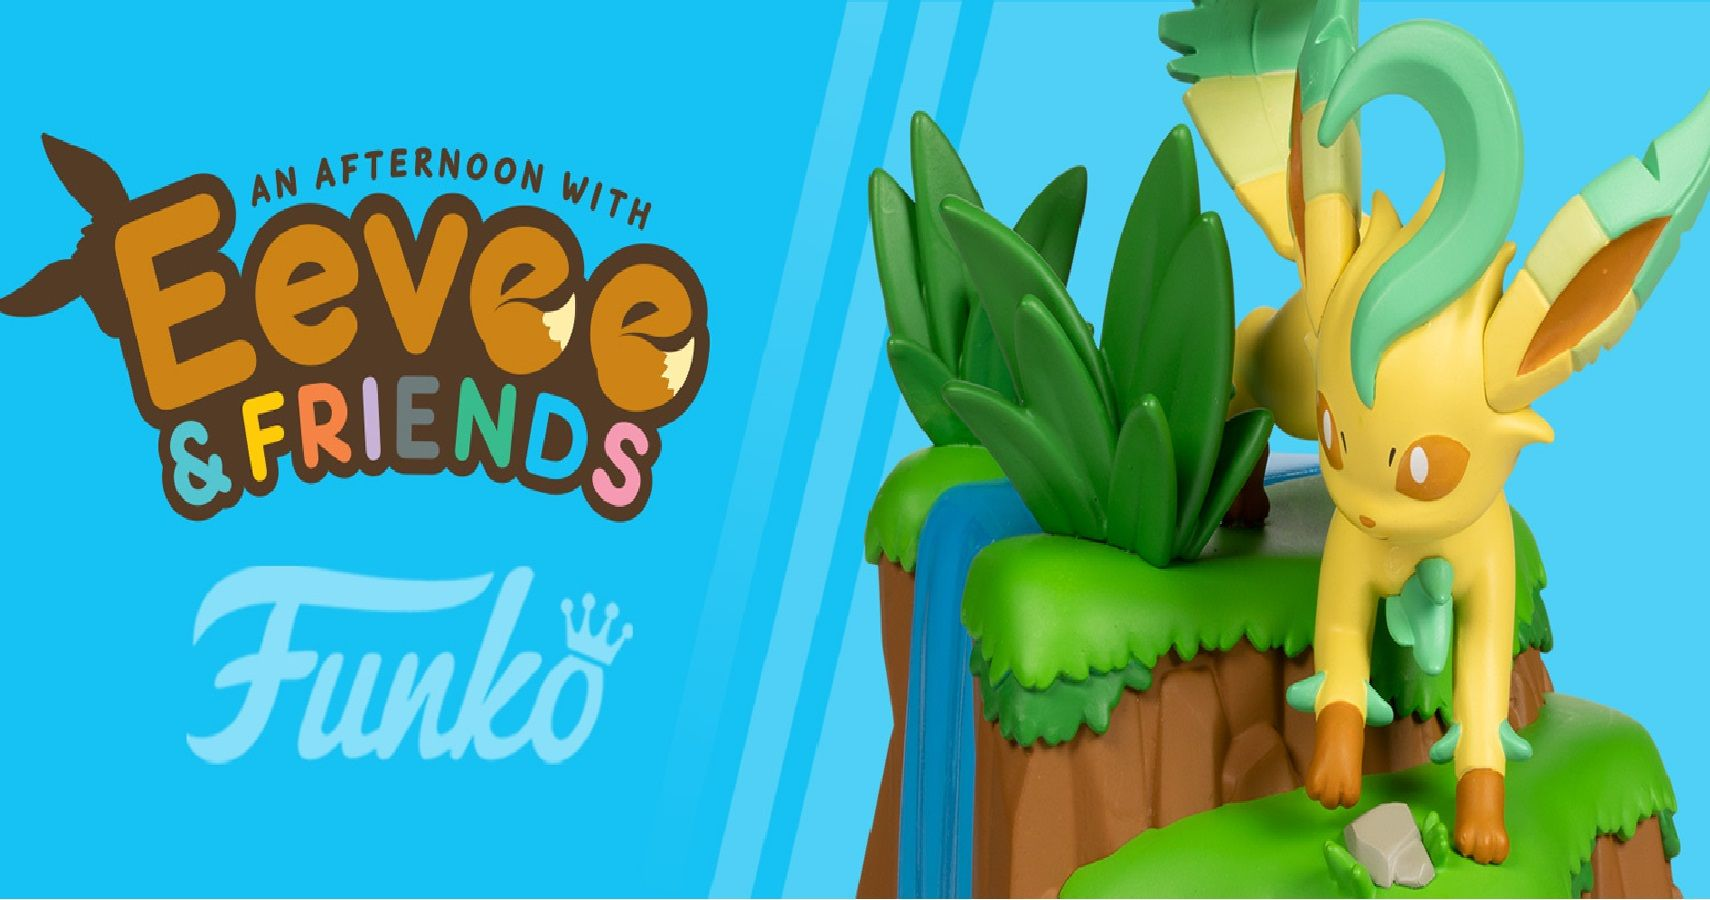 """Funko's Next """"An Afternoon With Eevee & Friends"""" Figure Is Leafeon, Debuts September 16"""